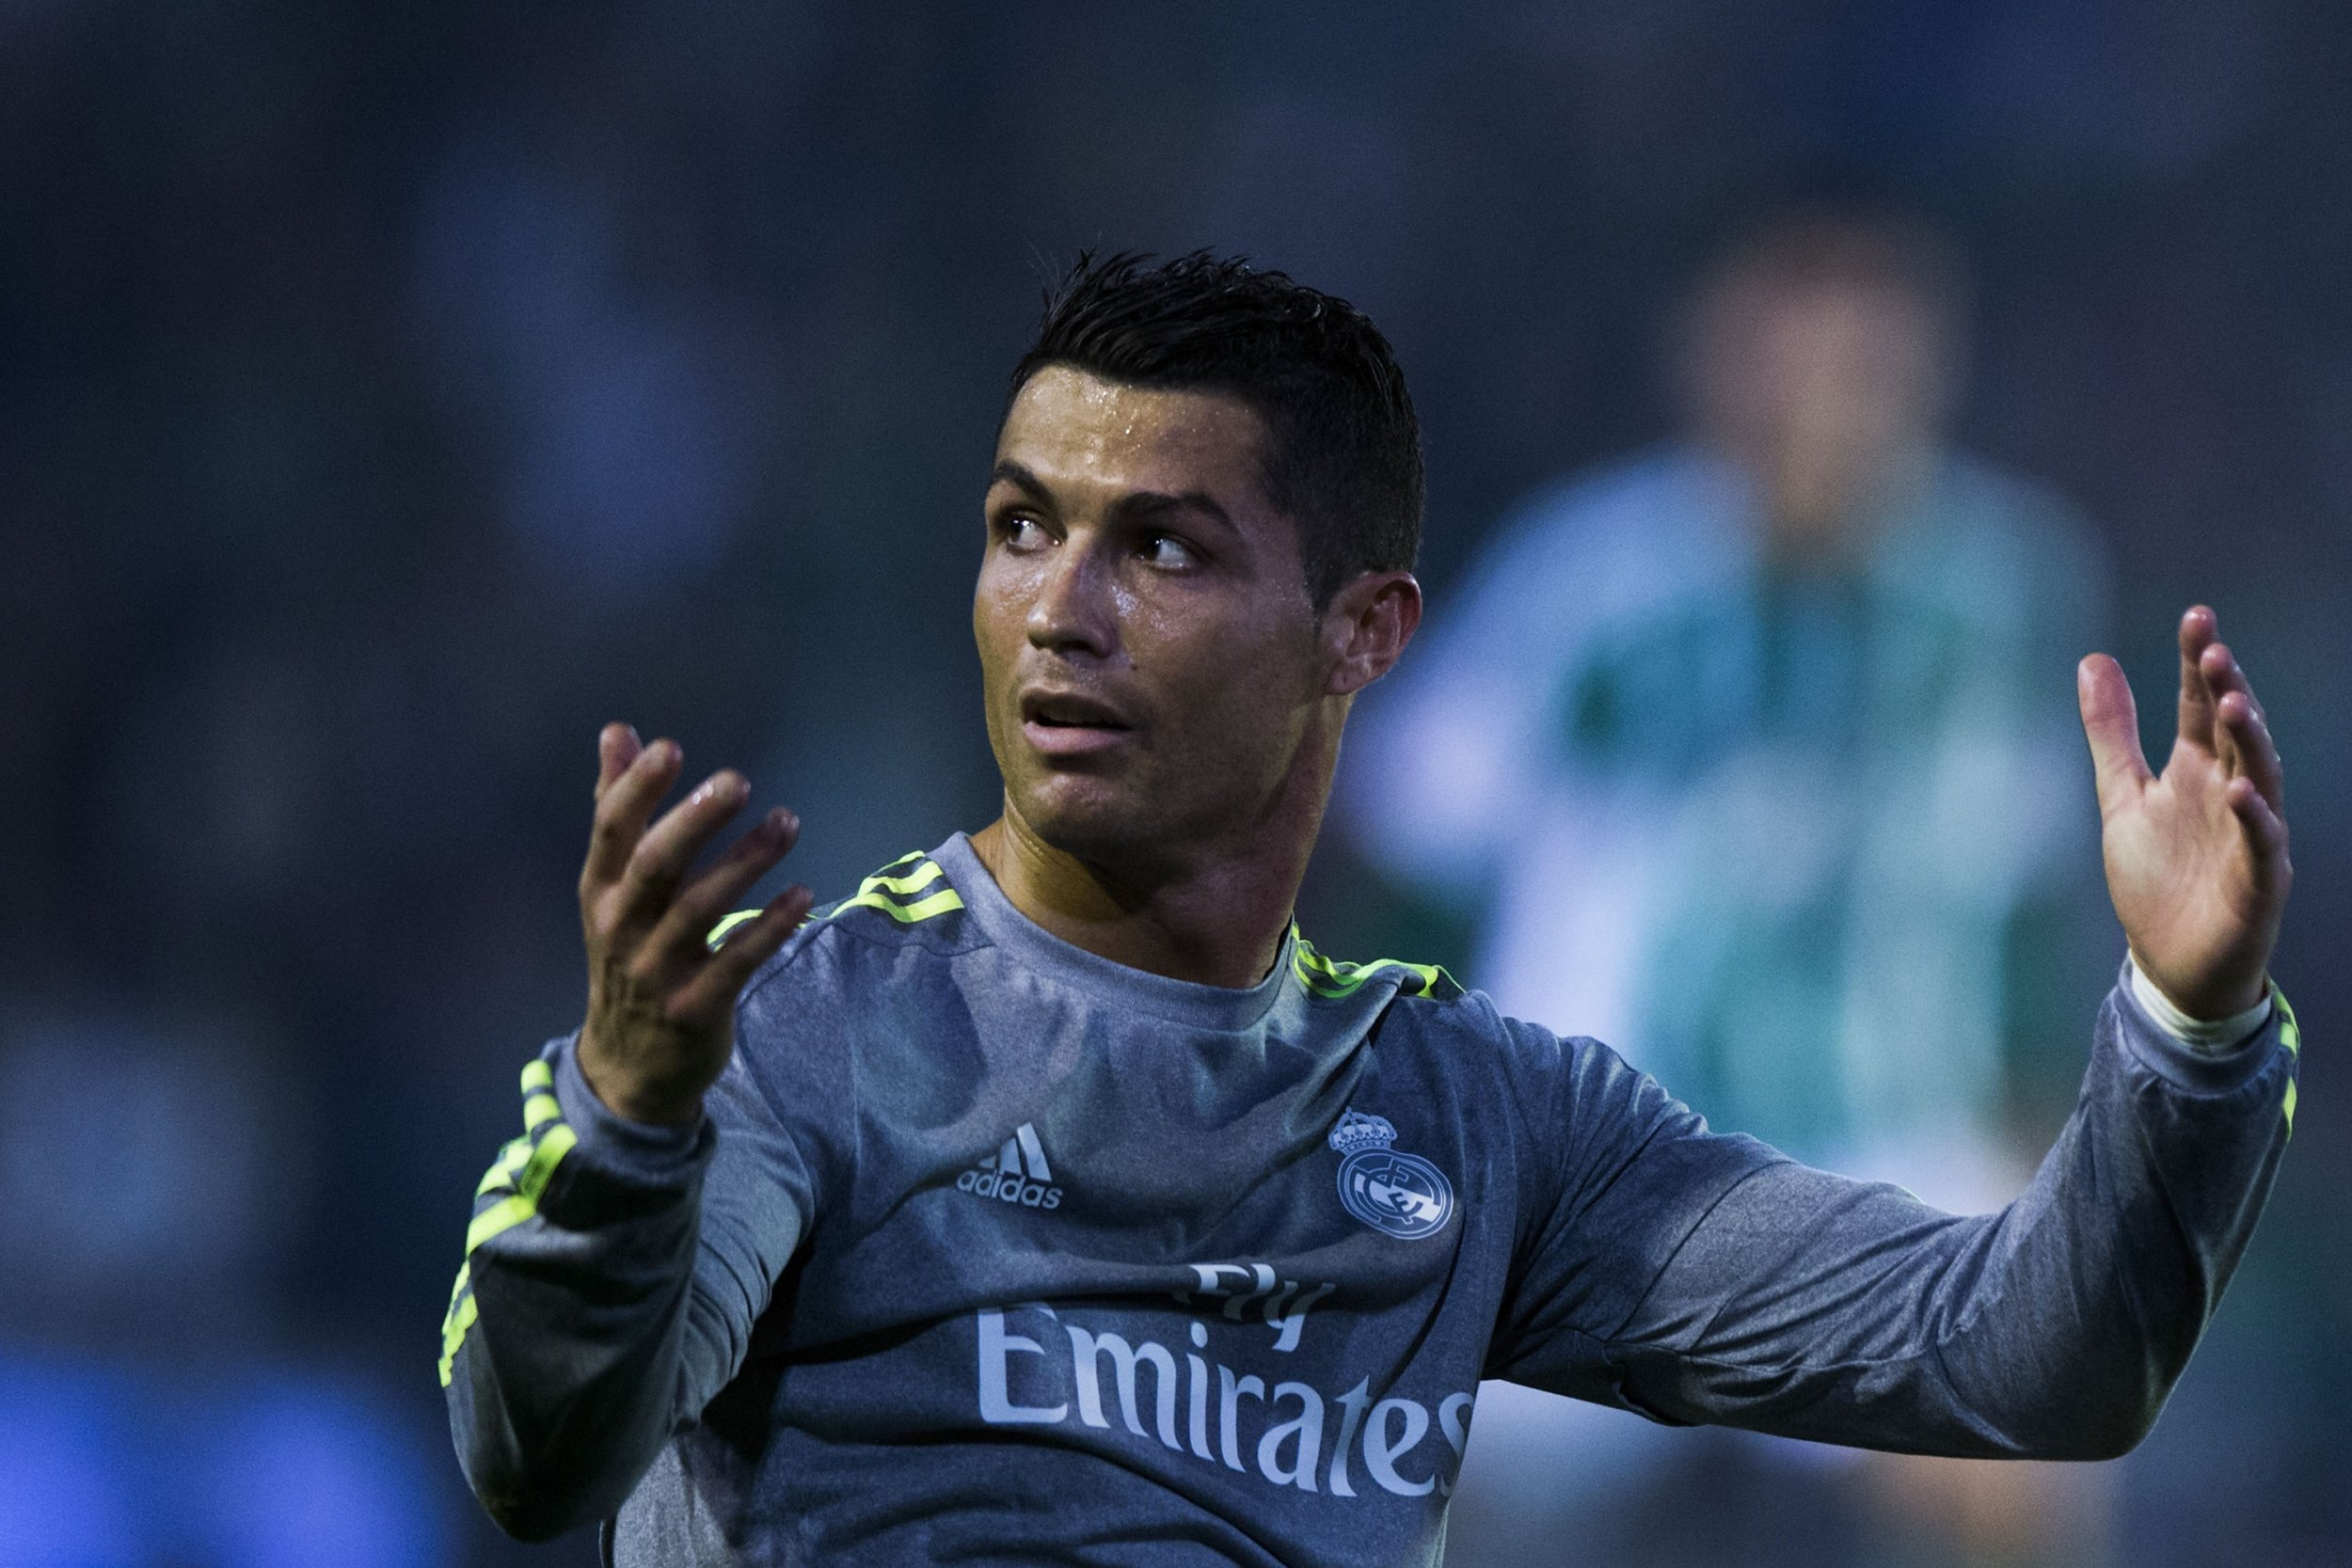 http://s.newsweek.com/sites/www.newsweek.com/files/2016/02/17/cristiano-ronaldo-seville-january-24-2016..jpg